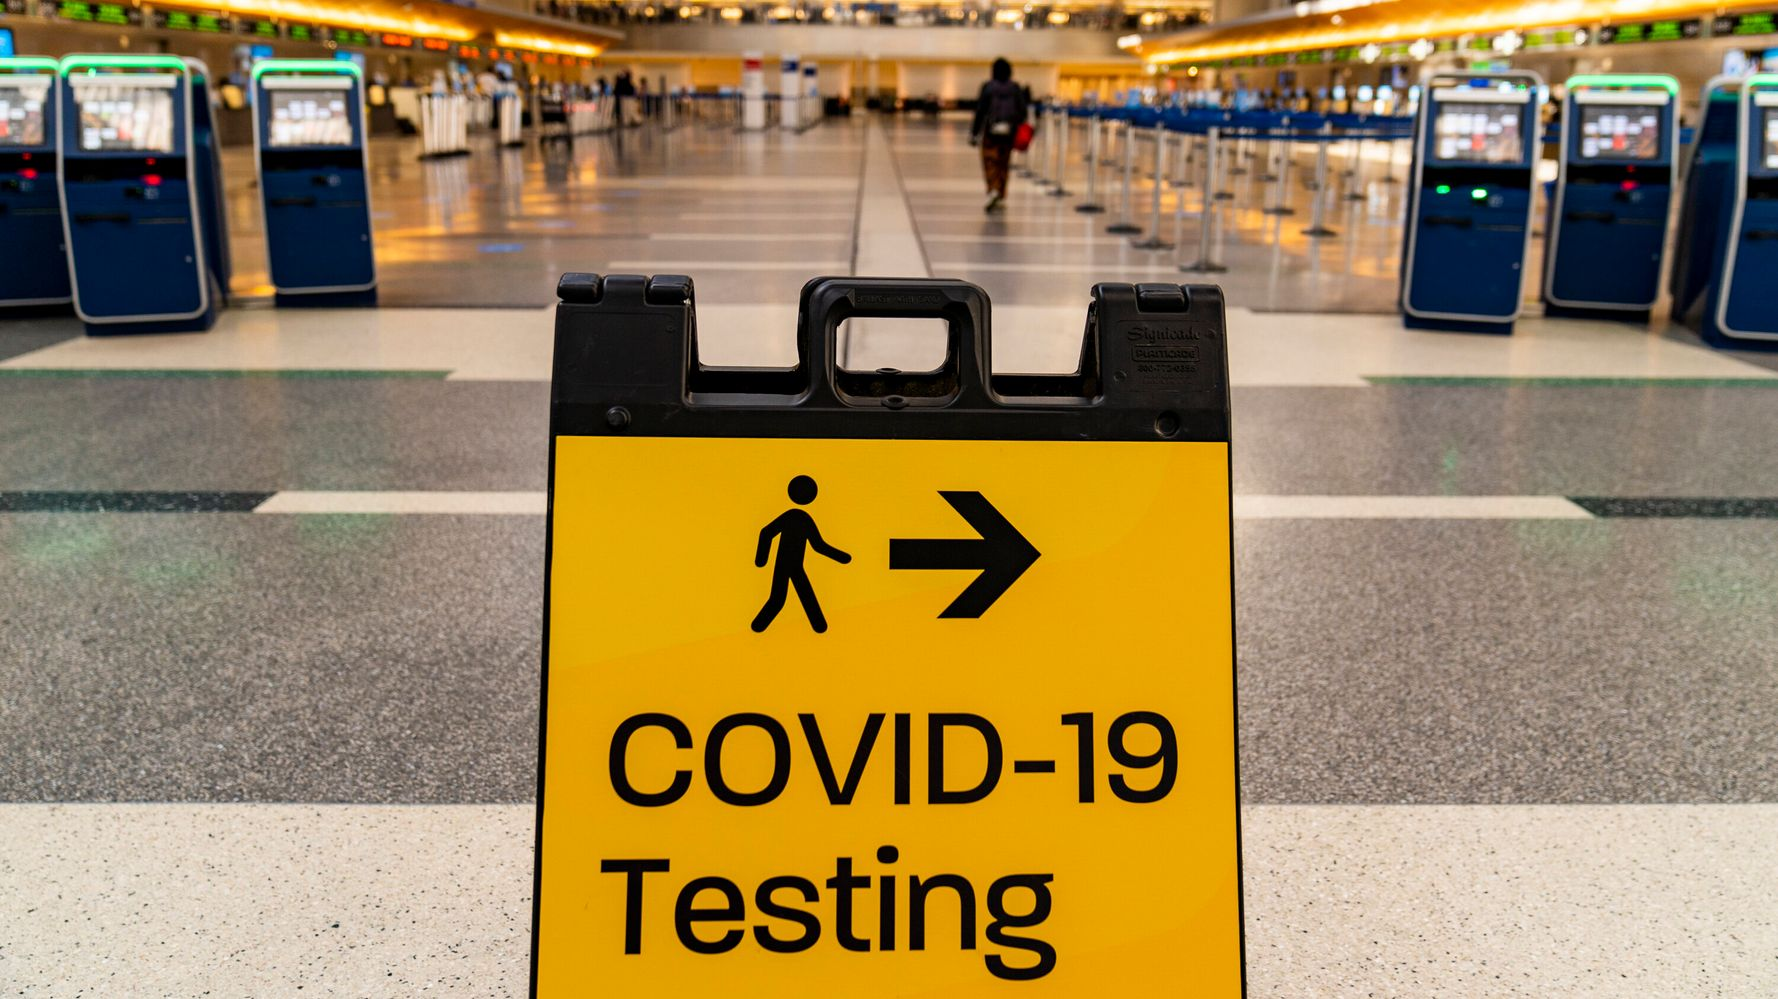 Experts Warn Of Erratic COVID-19 Testing Numbers After Thanksgiving